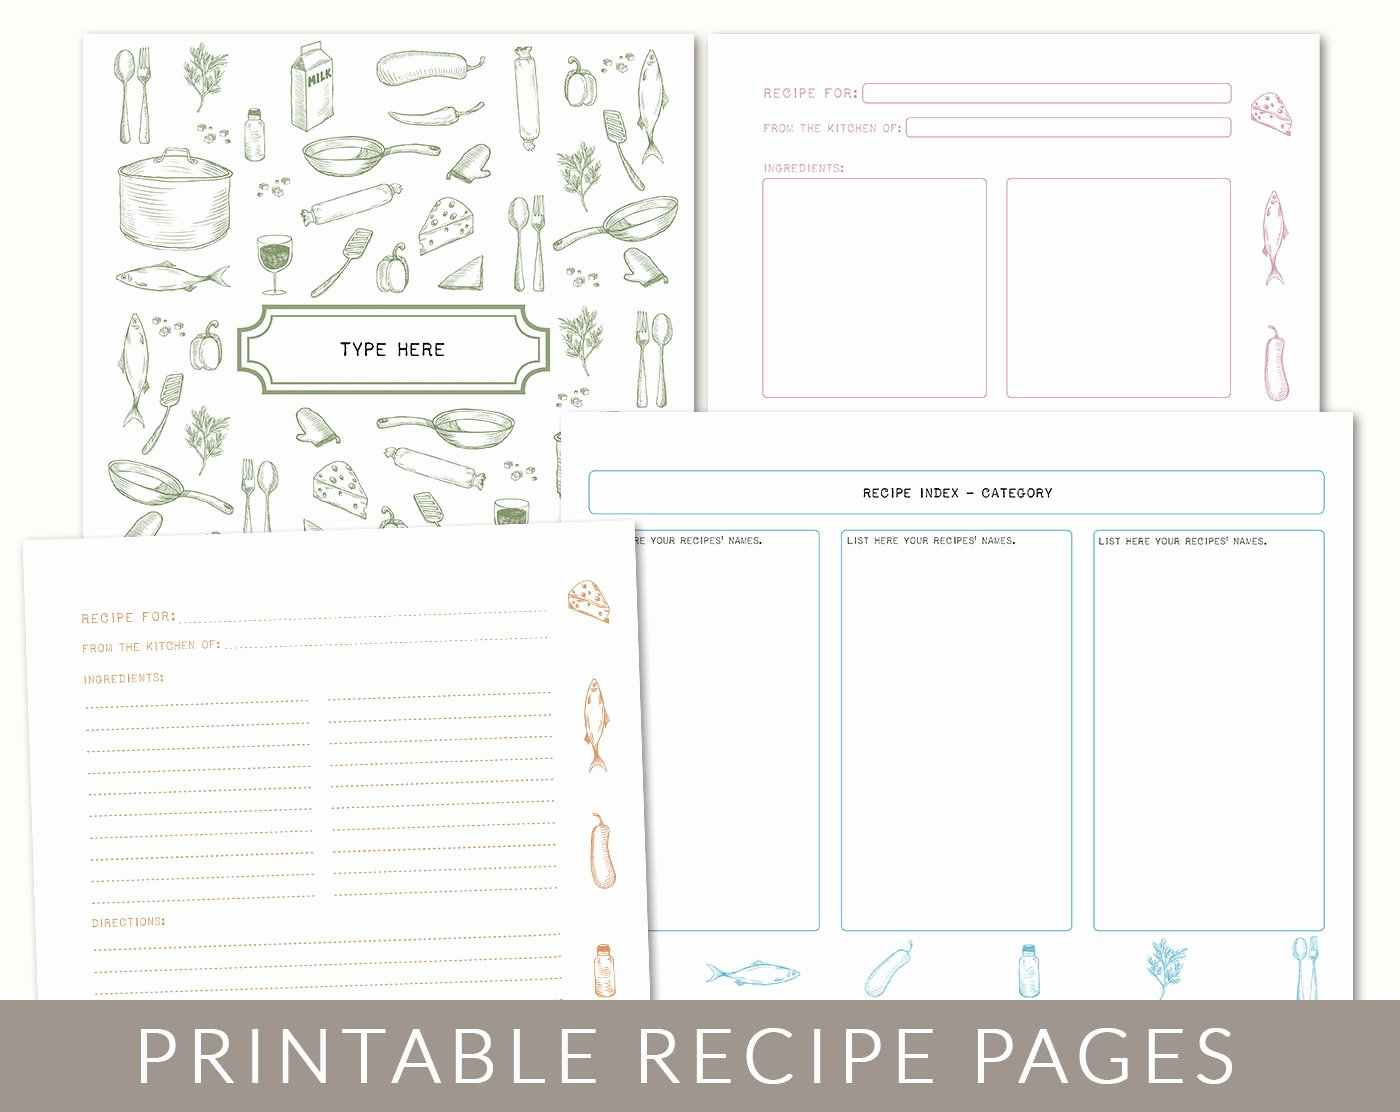 Free Printable Recipe Pages Unique Diy Custom Recipe Binder Cookbook Printable Pages 40